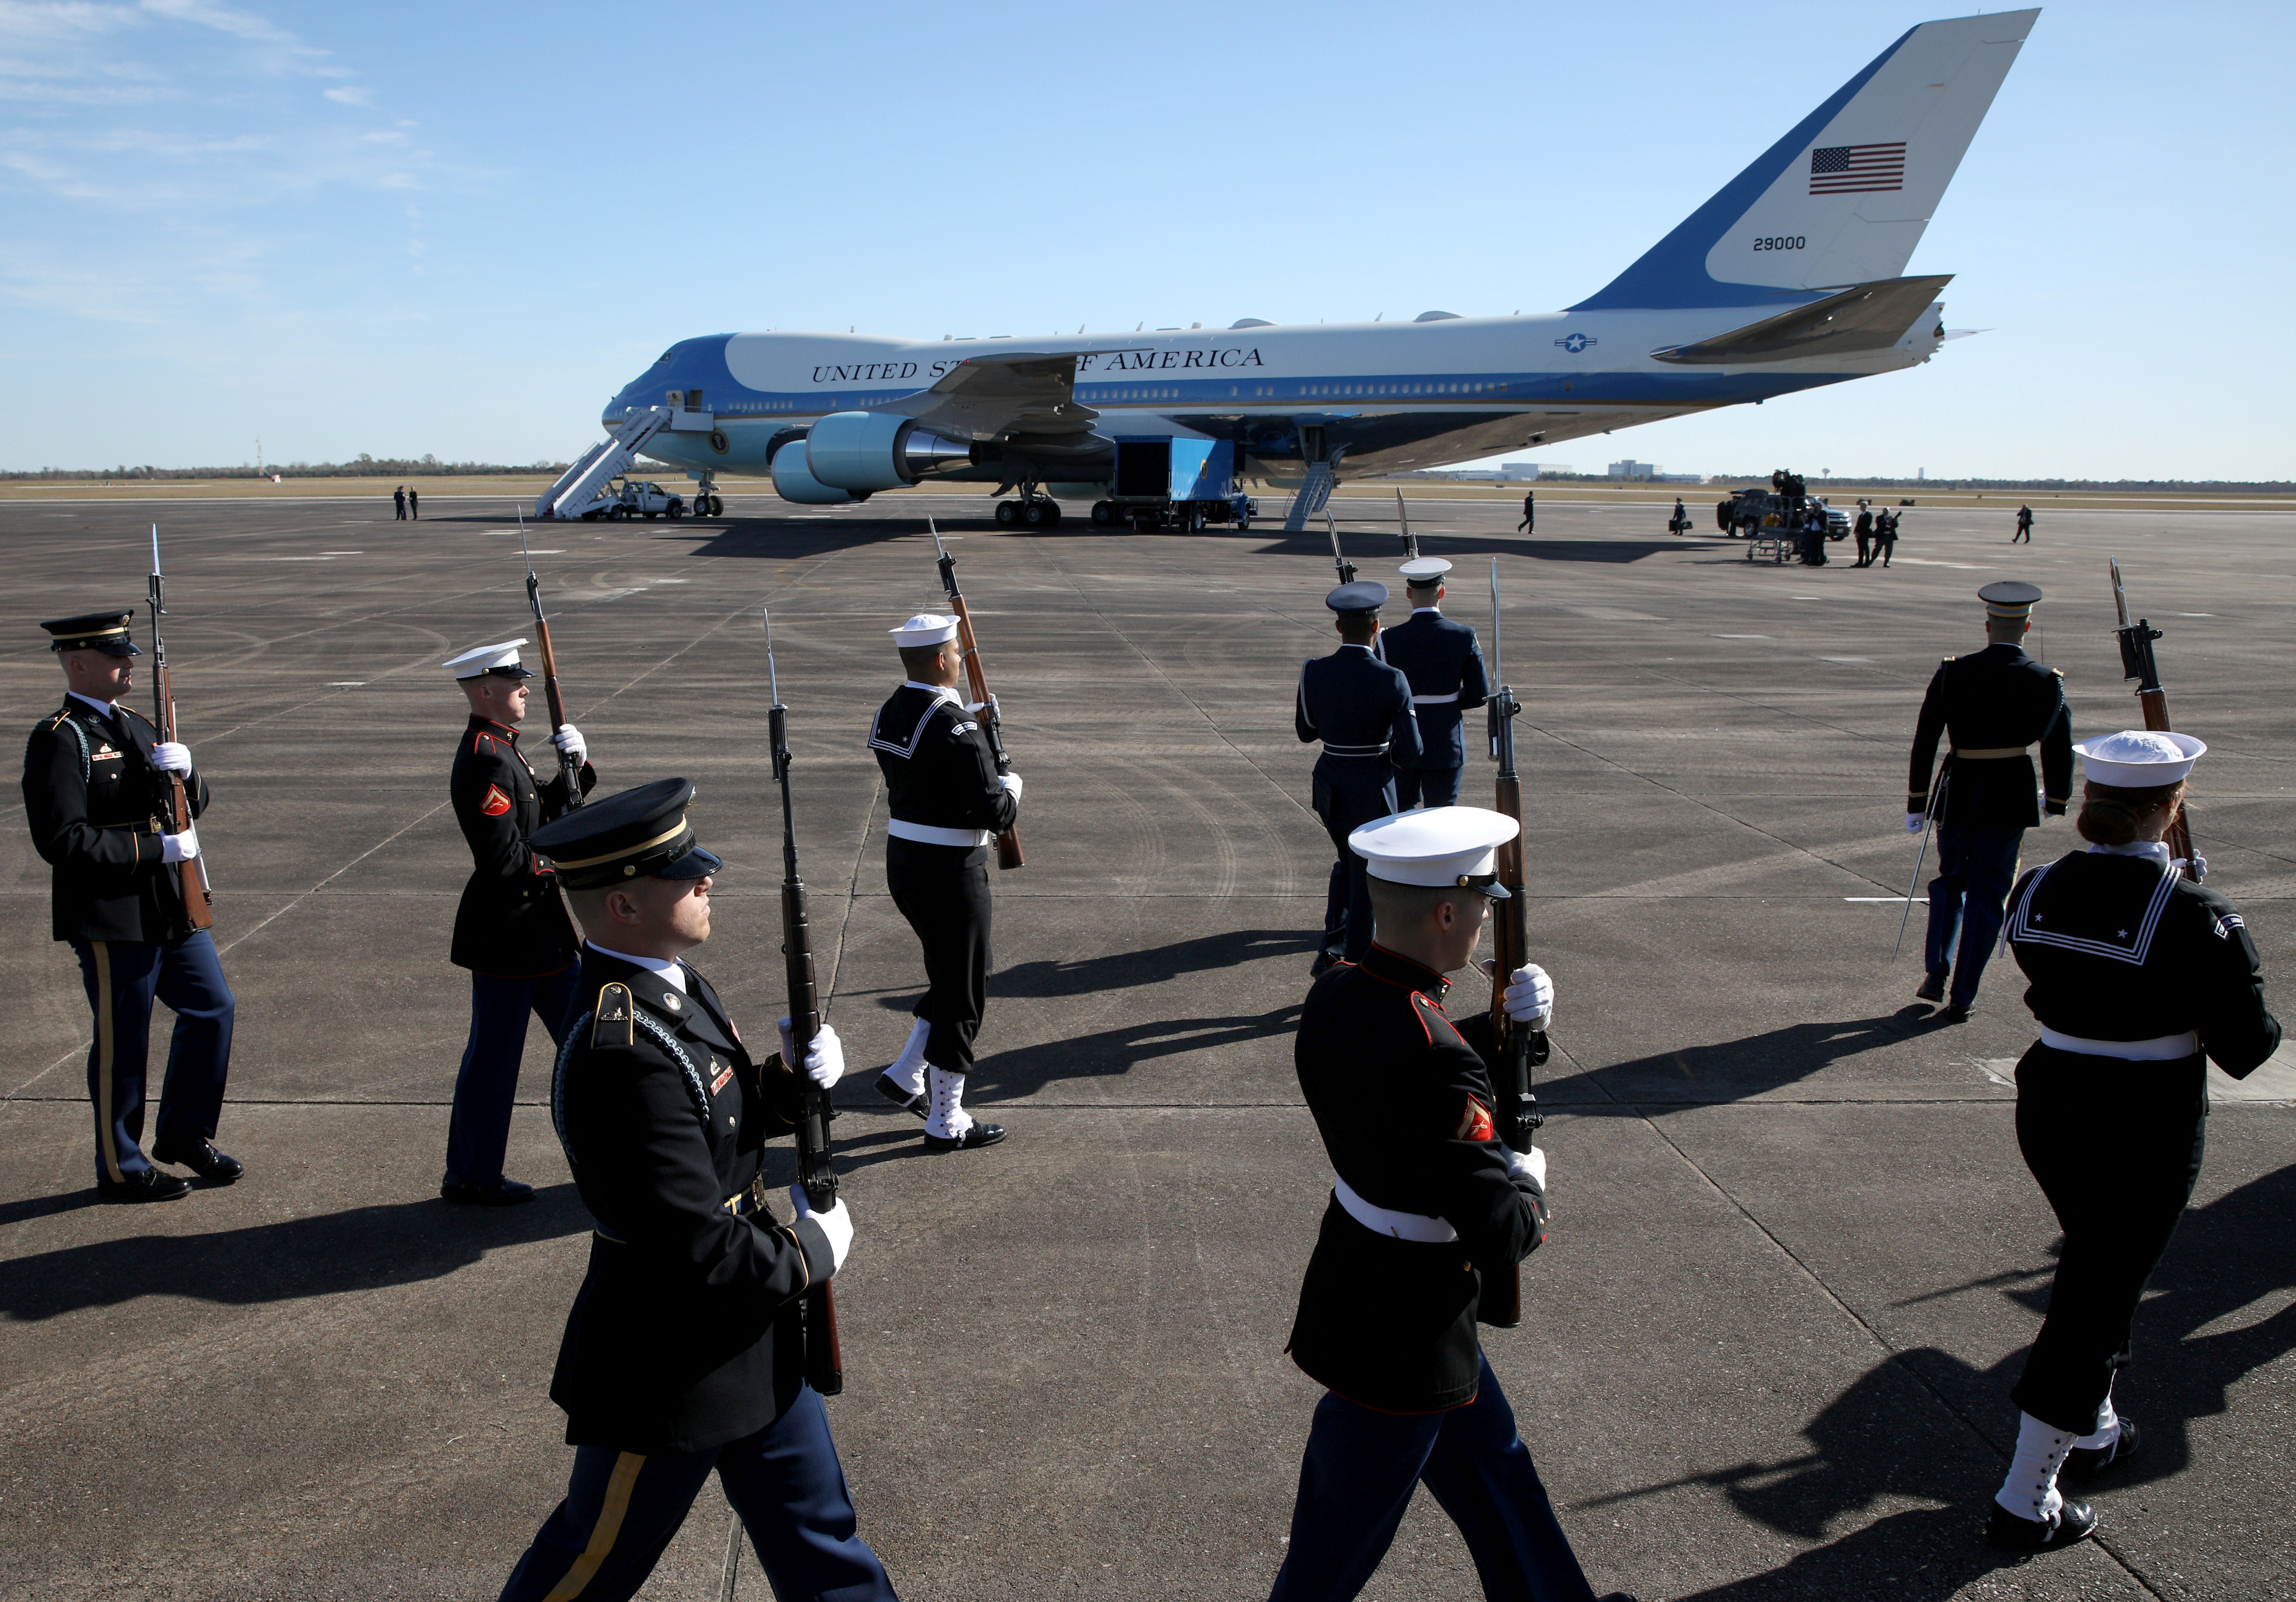 A military honor guard, seen in front of the Special Air Mission 41 plane, takes part in a departure ceremony honoring former President George H.W. Bush at Ellington Field Joint Reserve Base in Houston, Texas, U.S., December 3, 2018. (REUTERS/Loren Elliott)